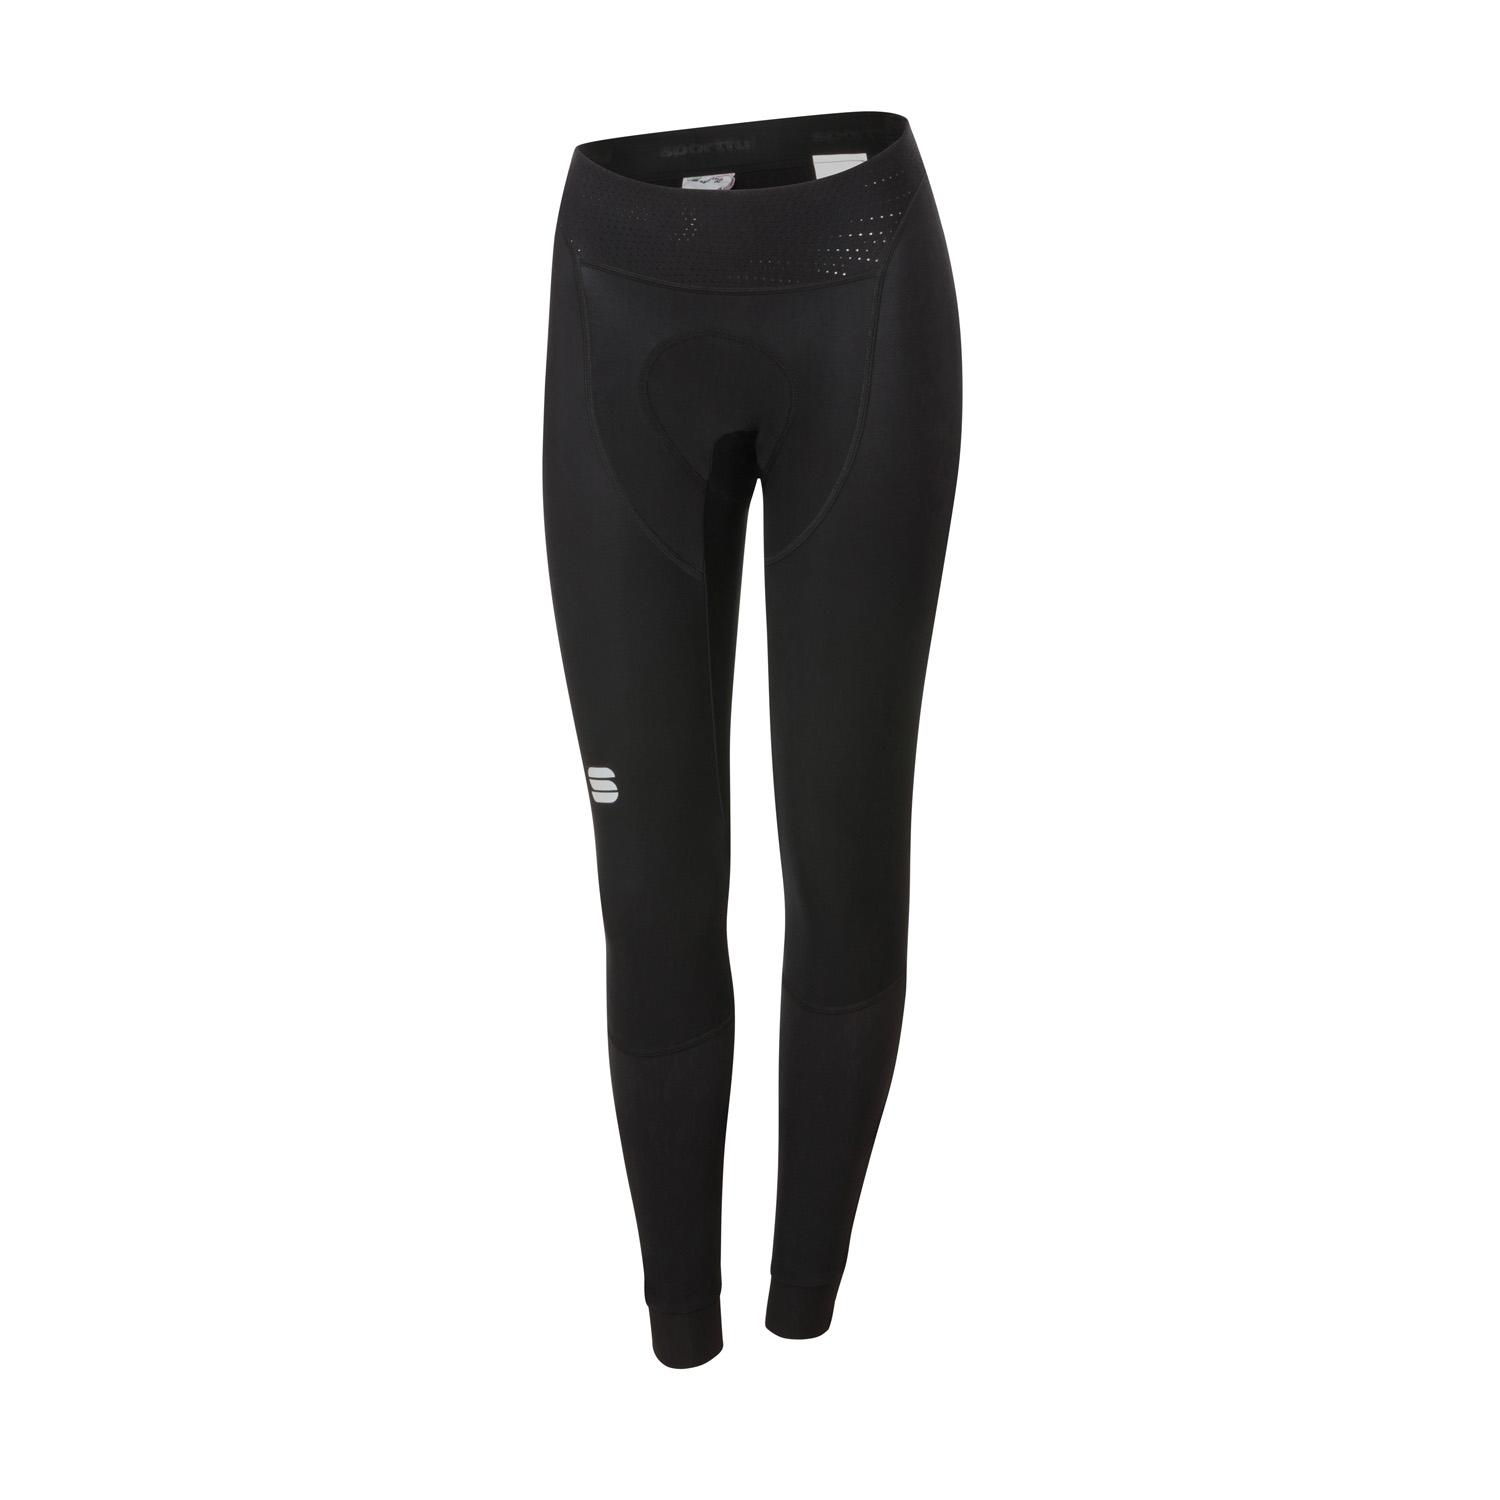 Afbeelding Sportful Fietsbroek lang zonder bretels Dames Zwart - TOTAL COMFORT WOMAN TIGHT BLACK